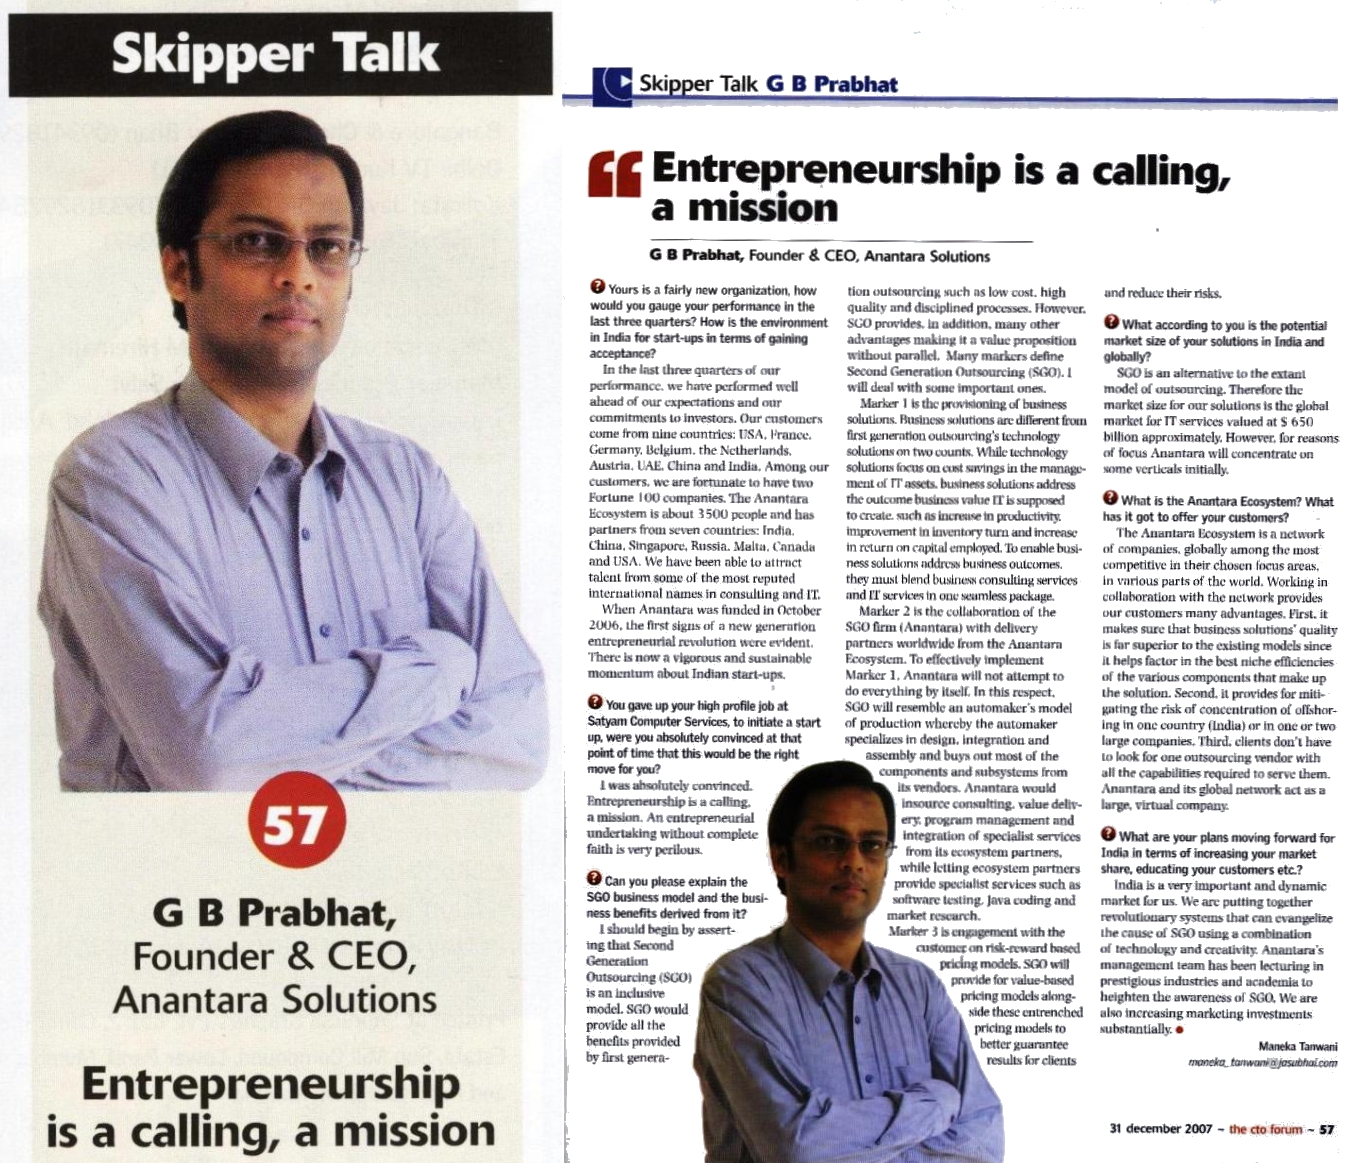 Anantara solutions Founder, G. B. Prabhat Interview